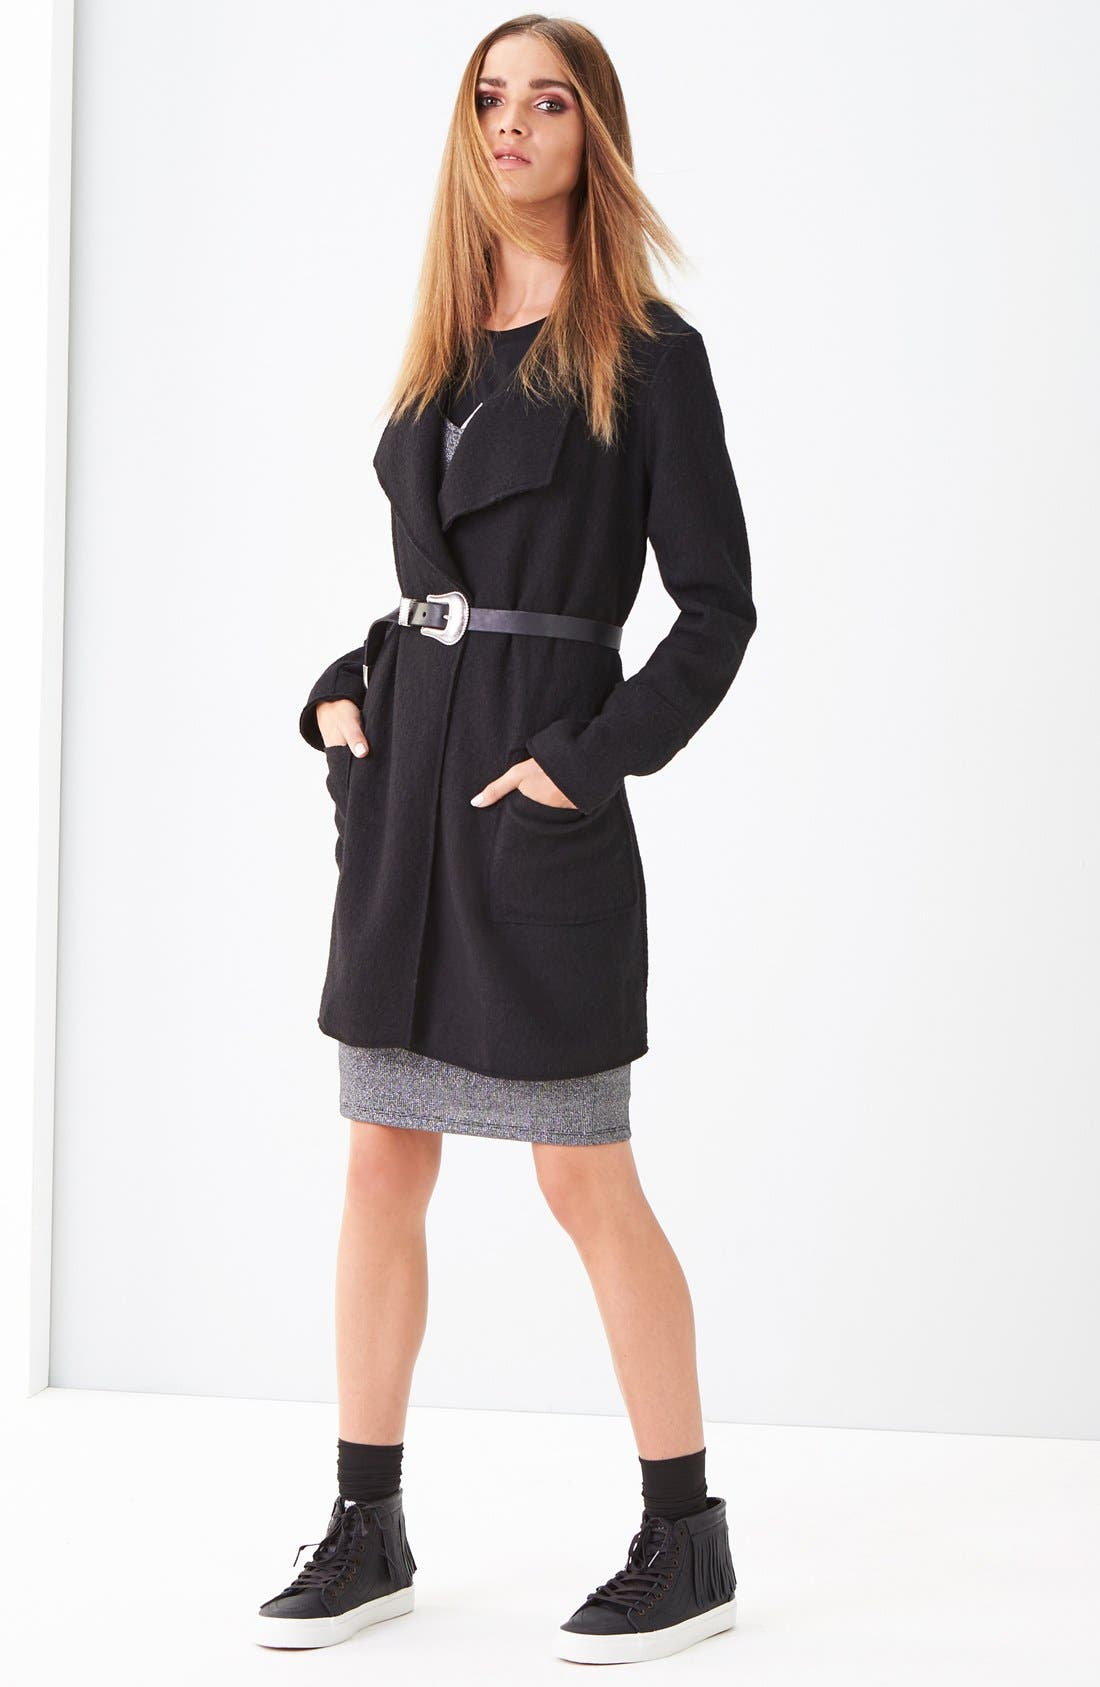 Thread & Supply Coat & Leith Dress Outfit with Accessories